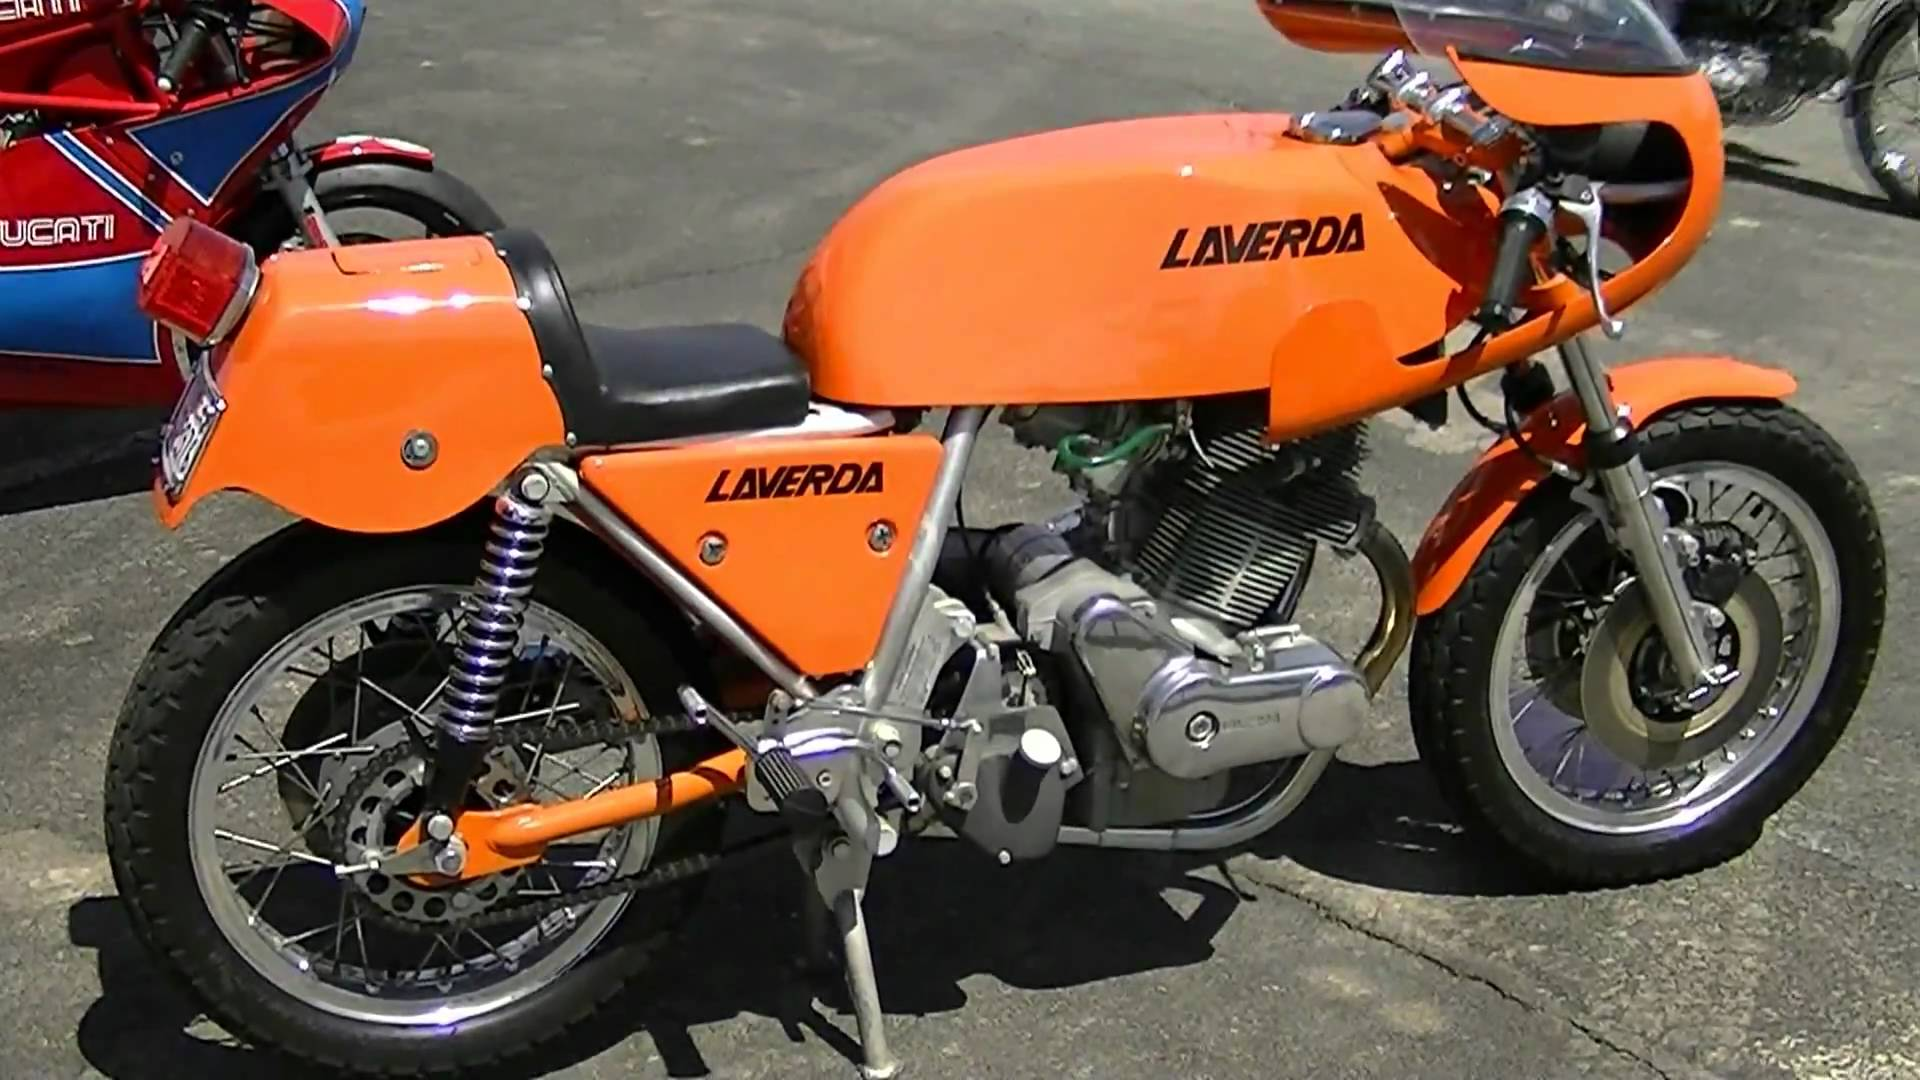 hight resolution of back download laverda 1000 picture 6 size 1920x1080 next